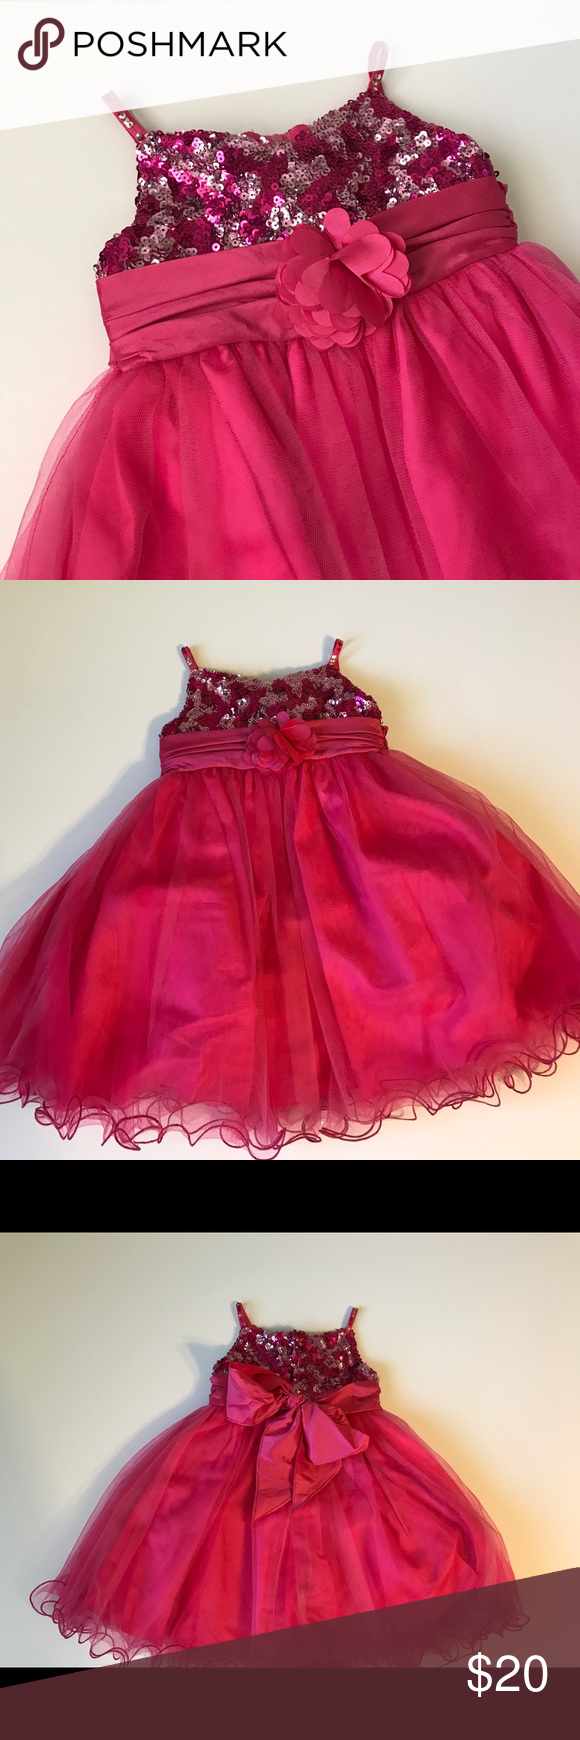 Tip top pink and hot pink sequin dress months pink sequin dress